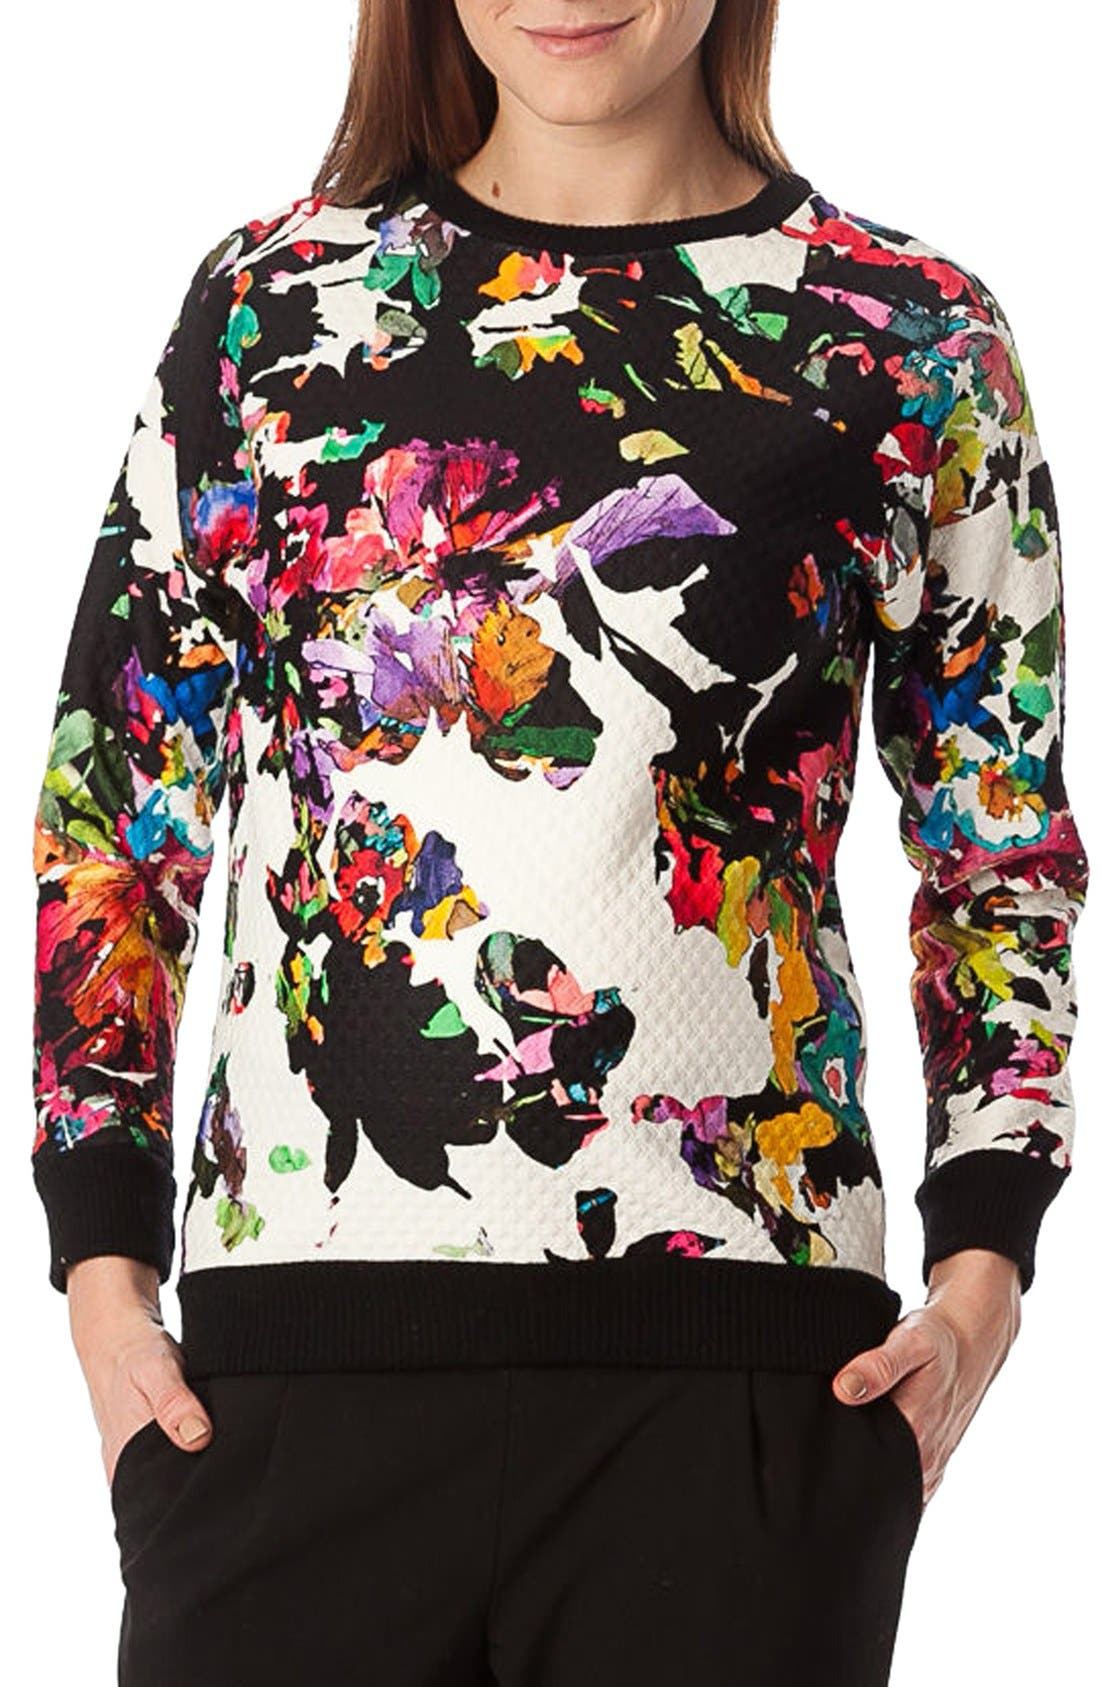 'Ocean' Floral Print Quilted Maternity Sweatshirt,                             Alternate thumbnail 5, color,